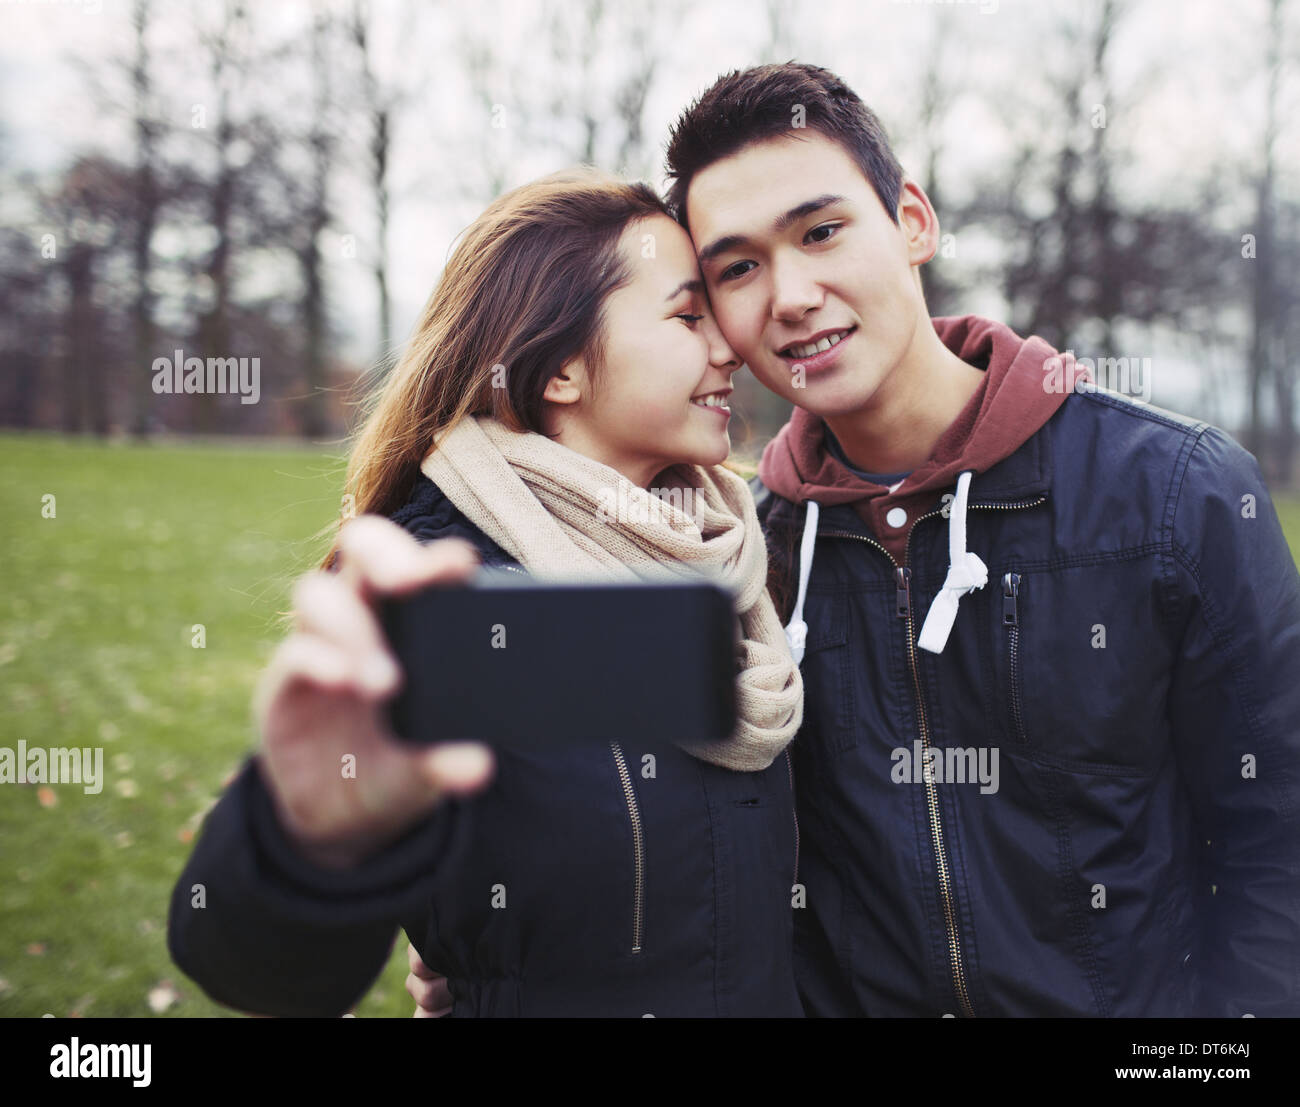 Affectionate young couple taking pictures using a smart phone at the park. Teenage boy and girl in love photographing themselves - Stock Image